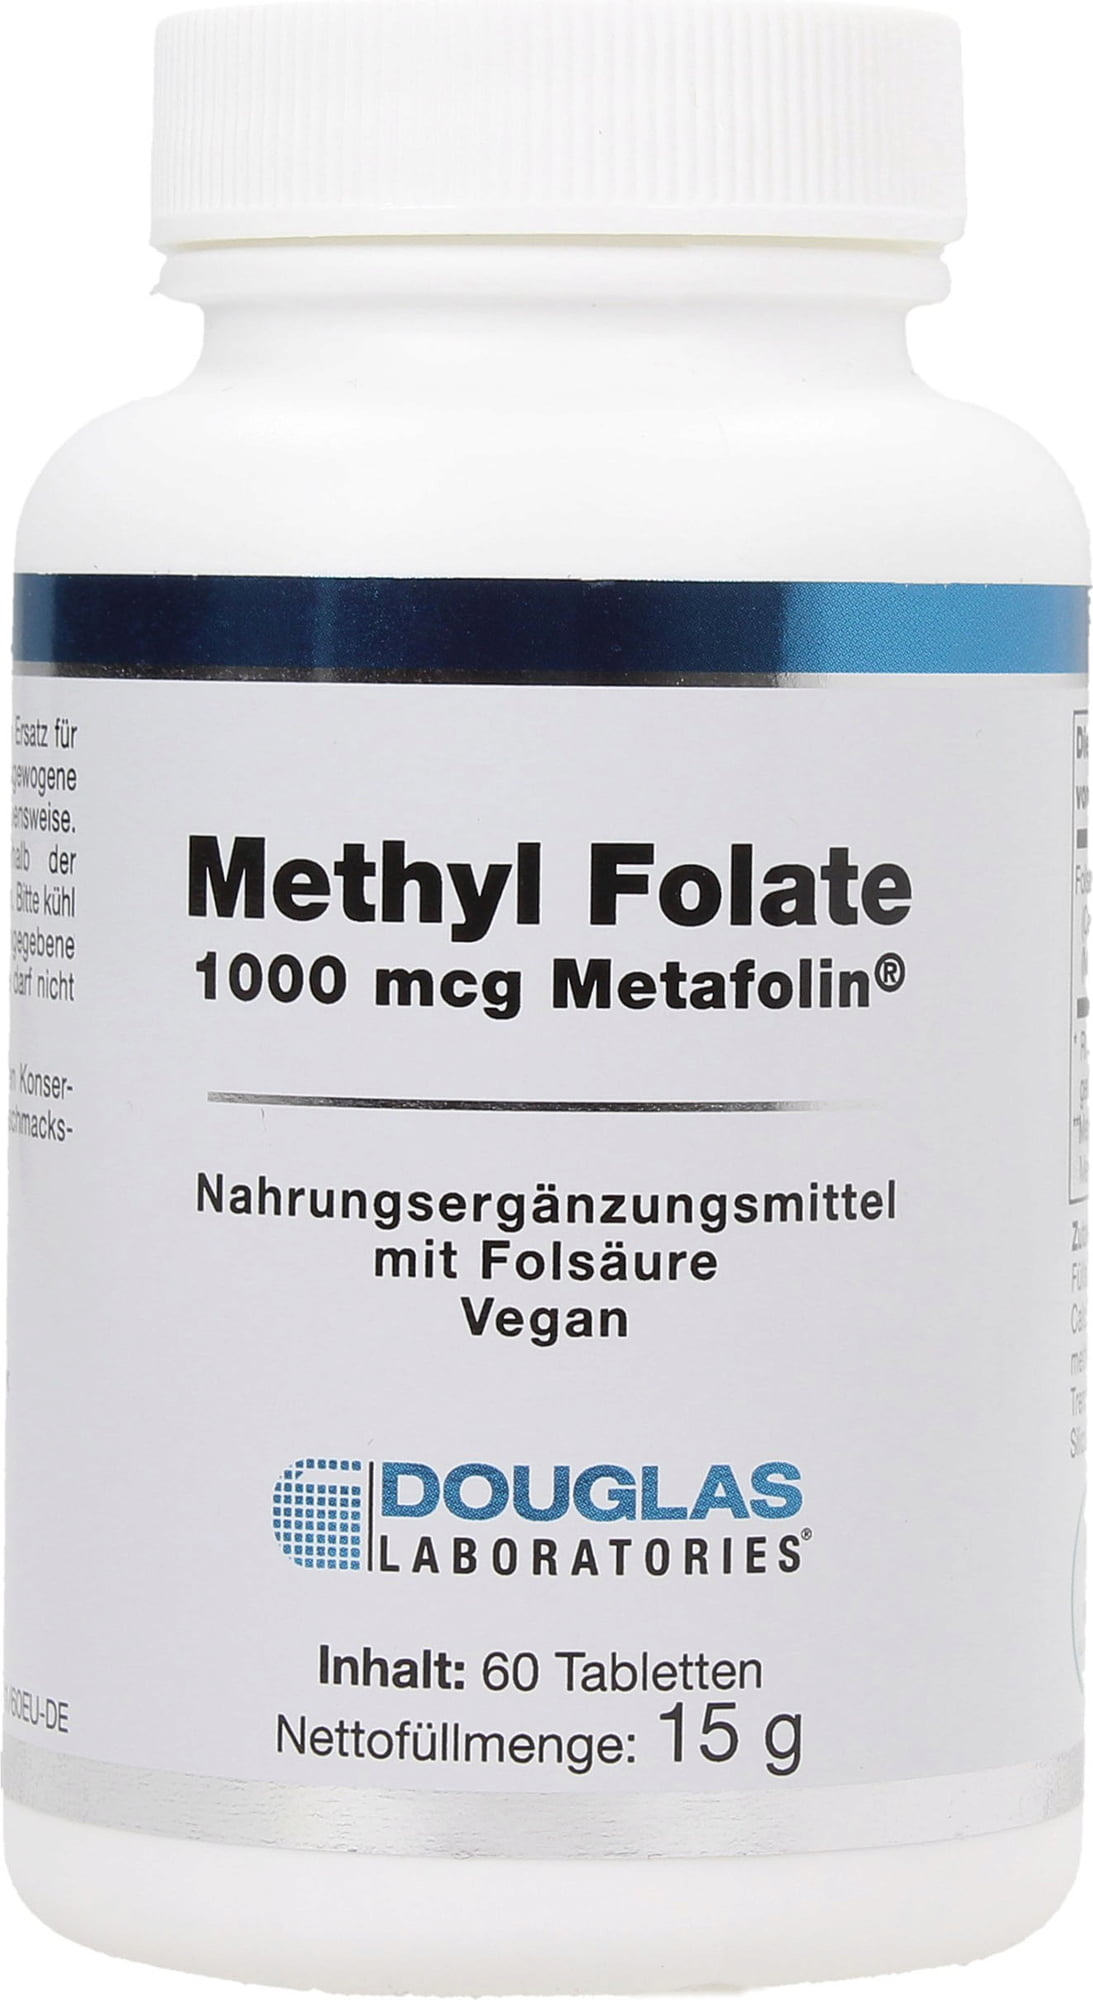 Douglas Laboratories Methyl-Folate - 60 Tabletten von Douglas Laboratories